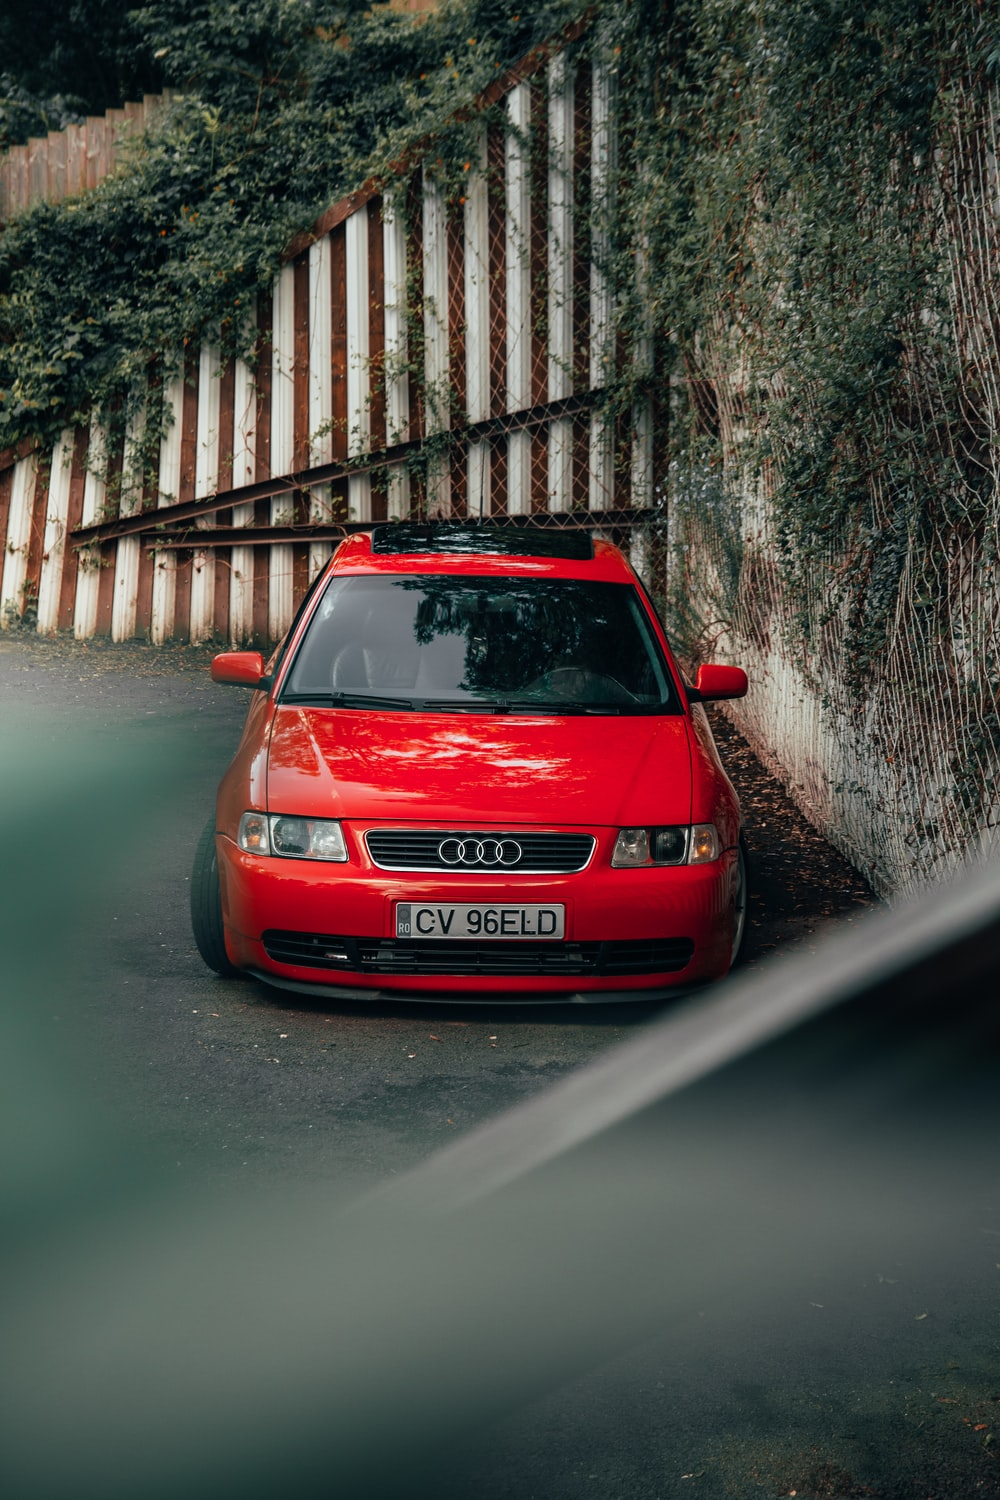 red Audi vehicle on road close-up photography